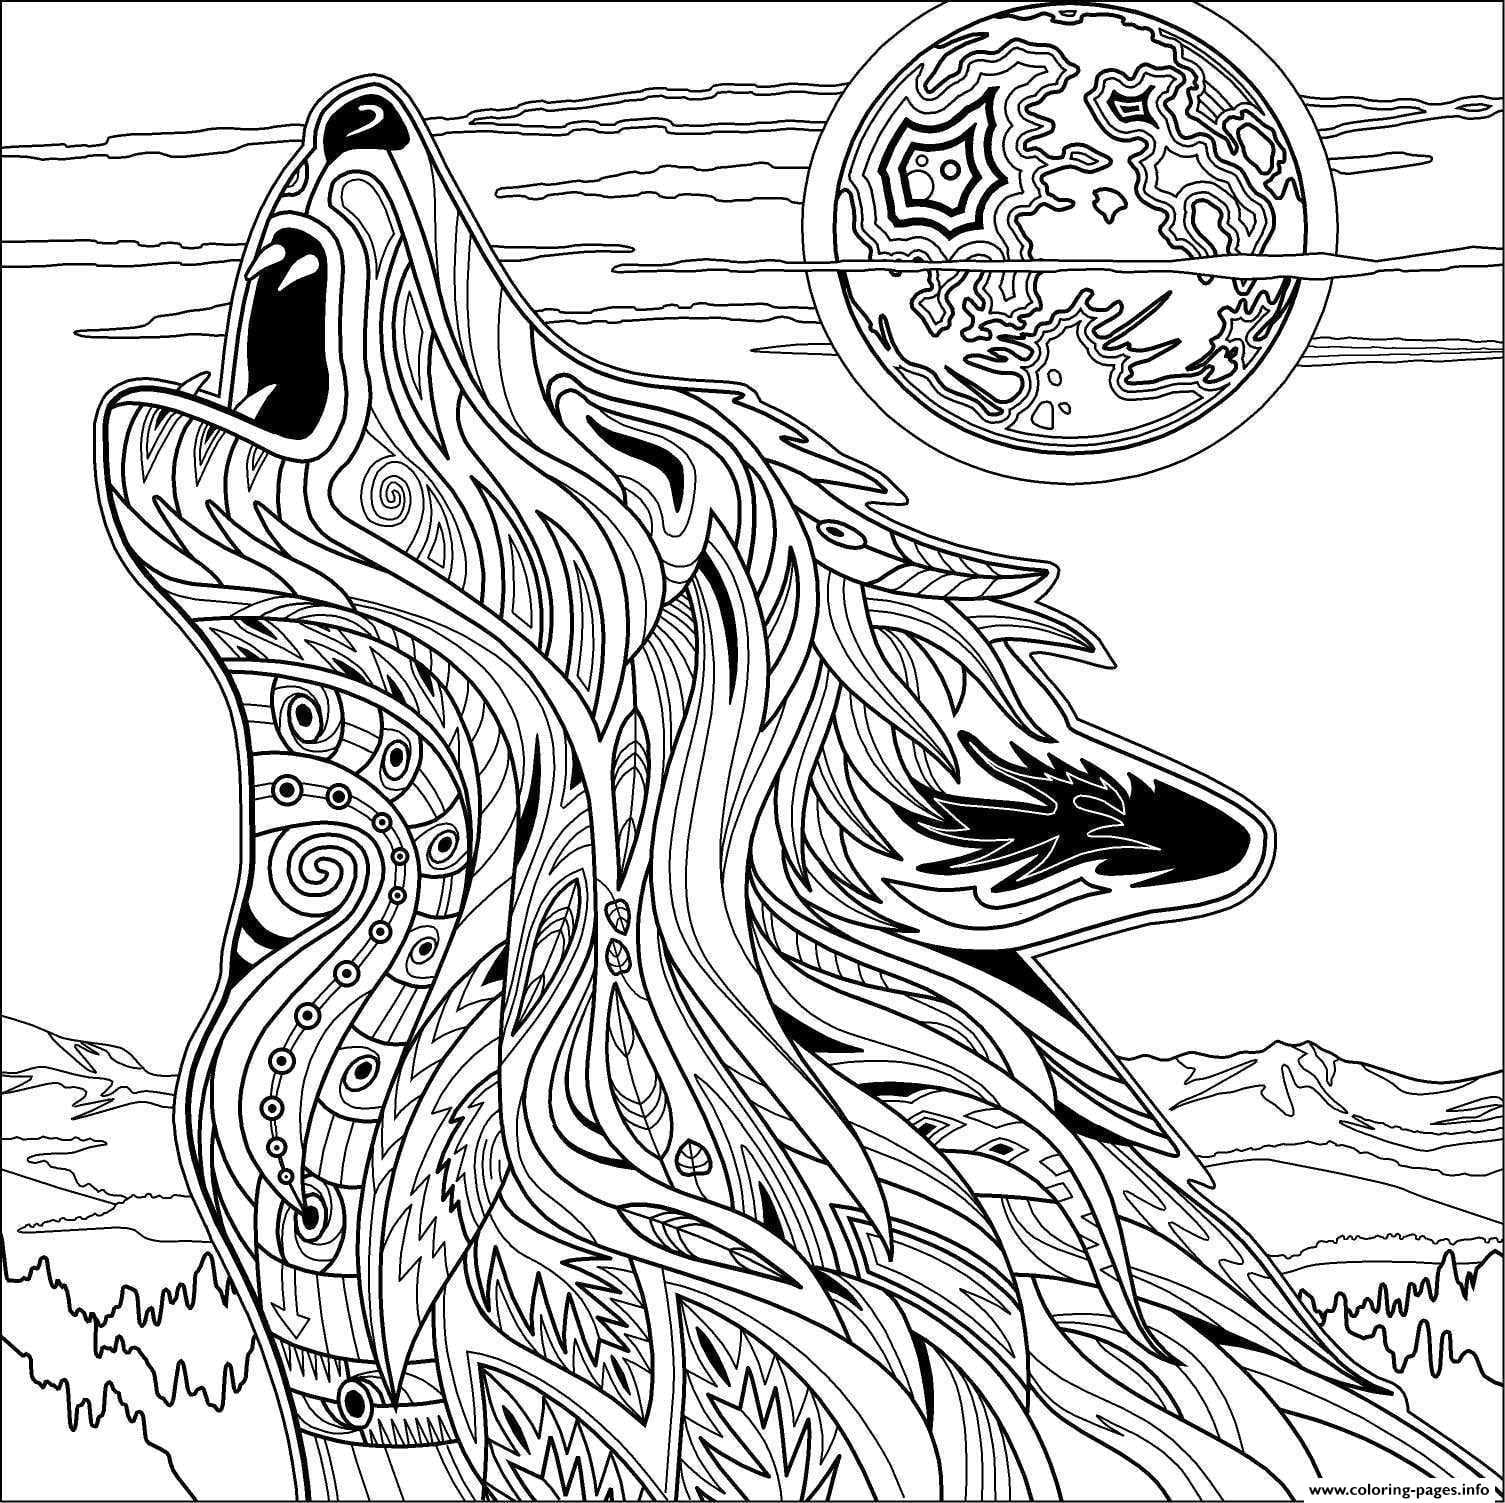 Elegant Wolf Coloring Page 24 For Gallery Coloring Ideas With Wolf